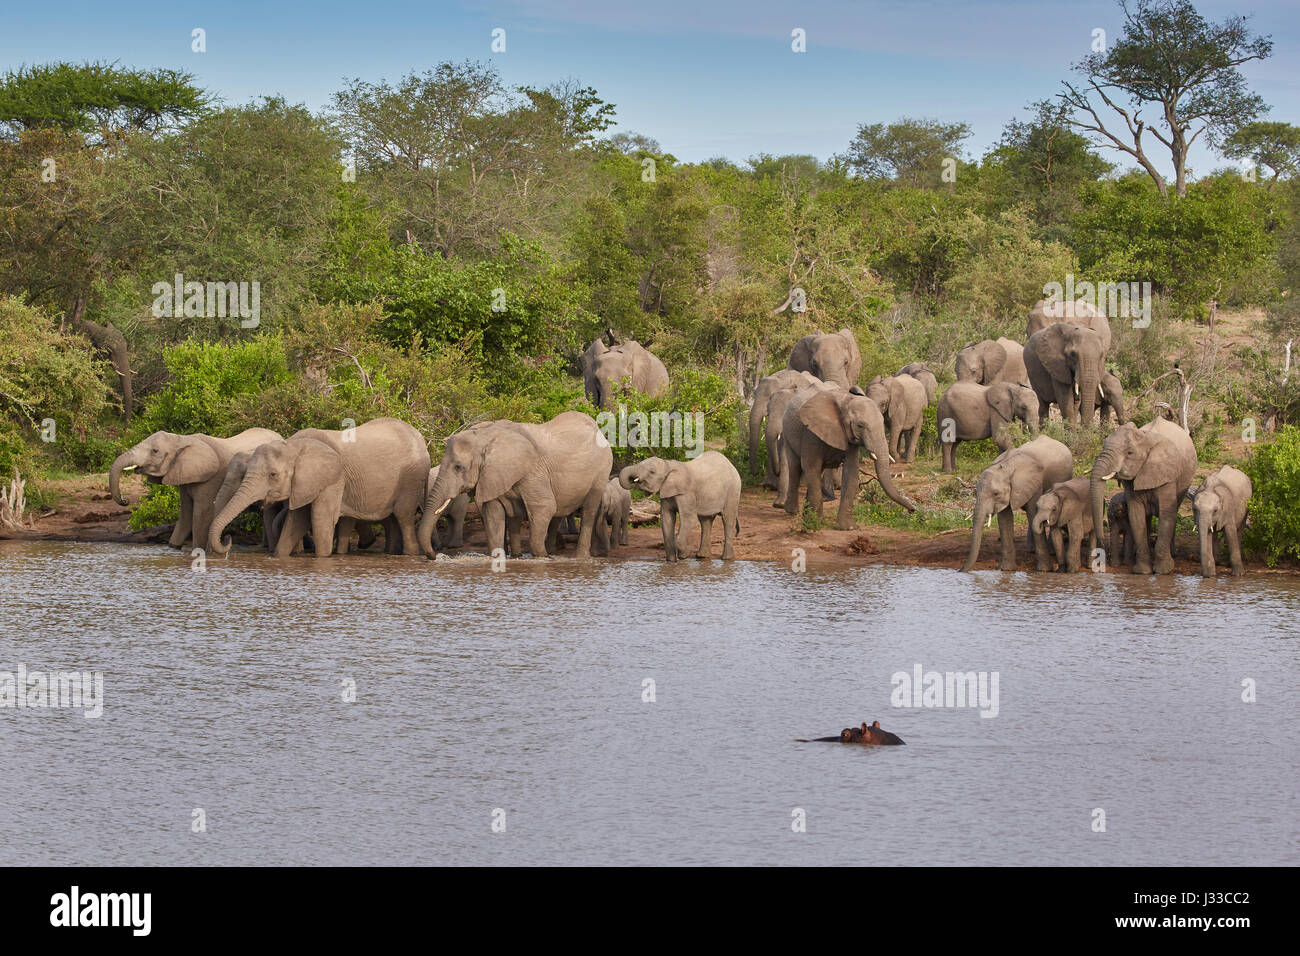 Elephants drinking in a waterhole, Krueger National park, South Africa, Africa - Stock Image